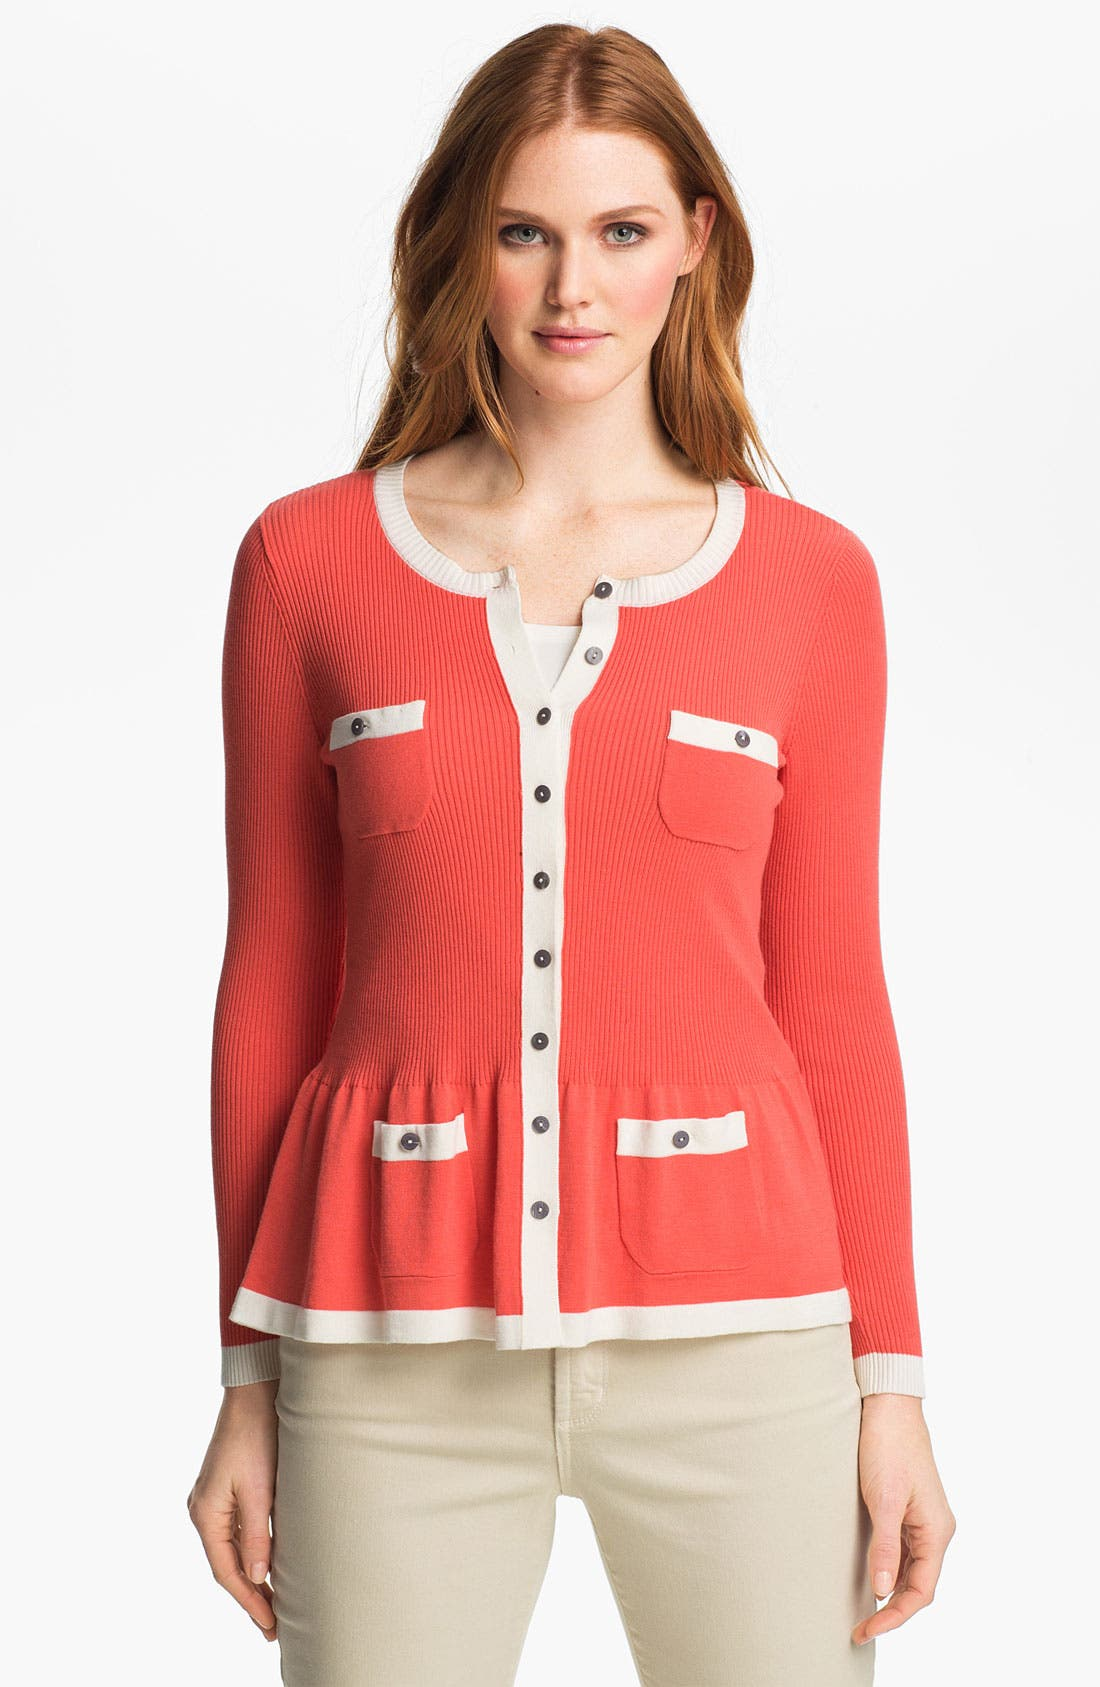 Main Image - Nic + Zoe Two Tone Peplum Sweater Jacket